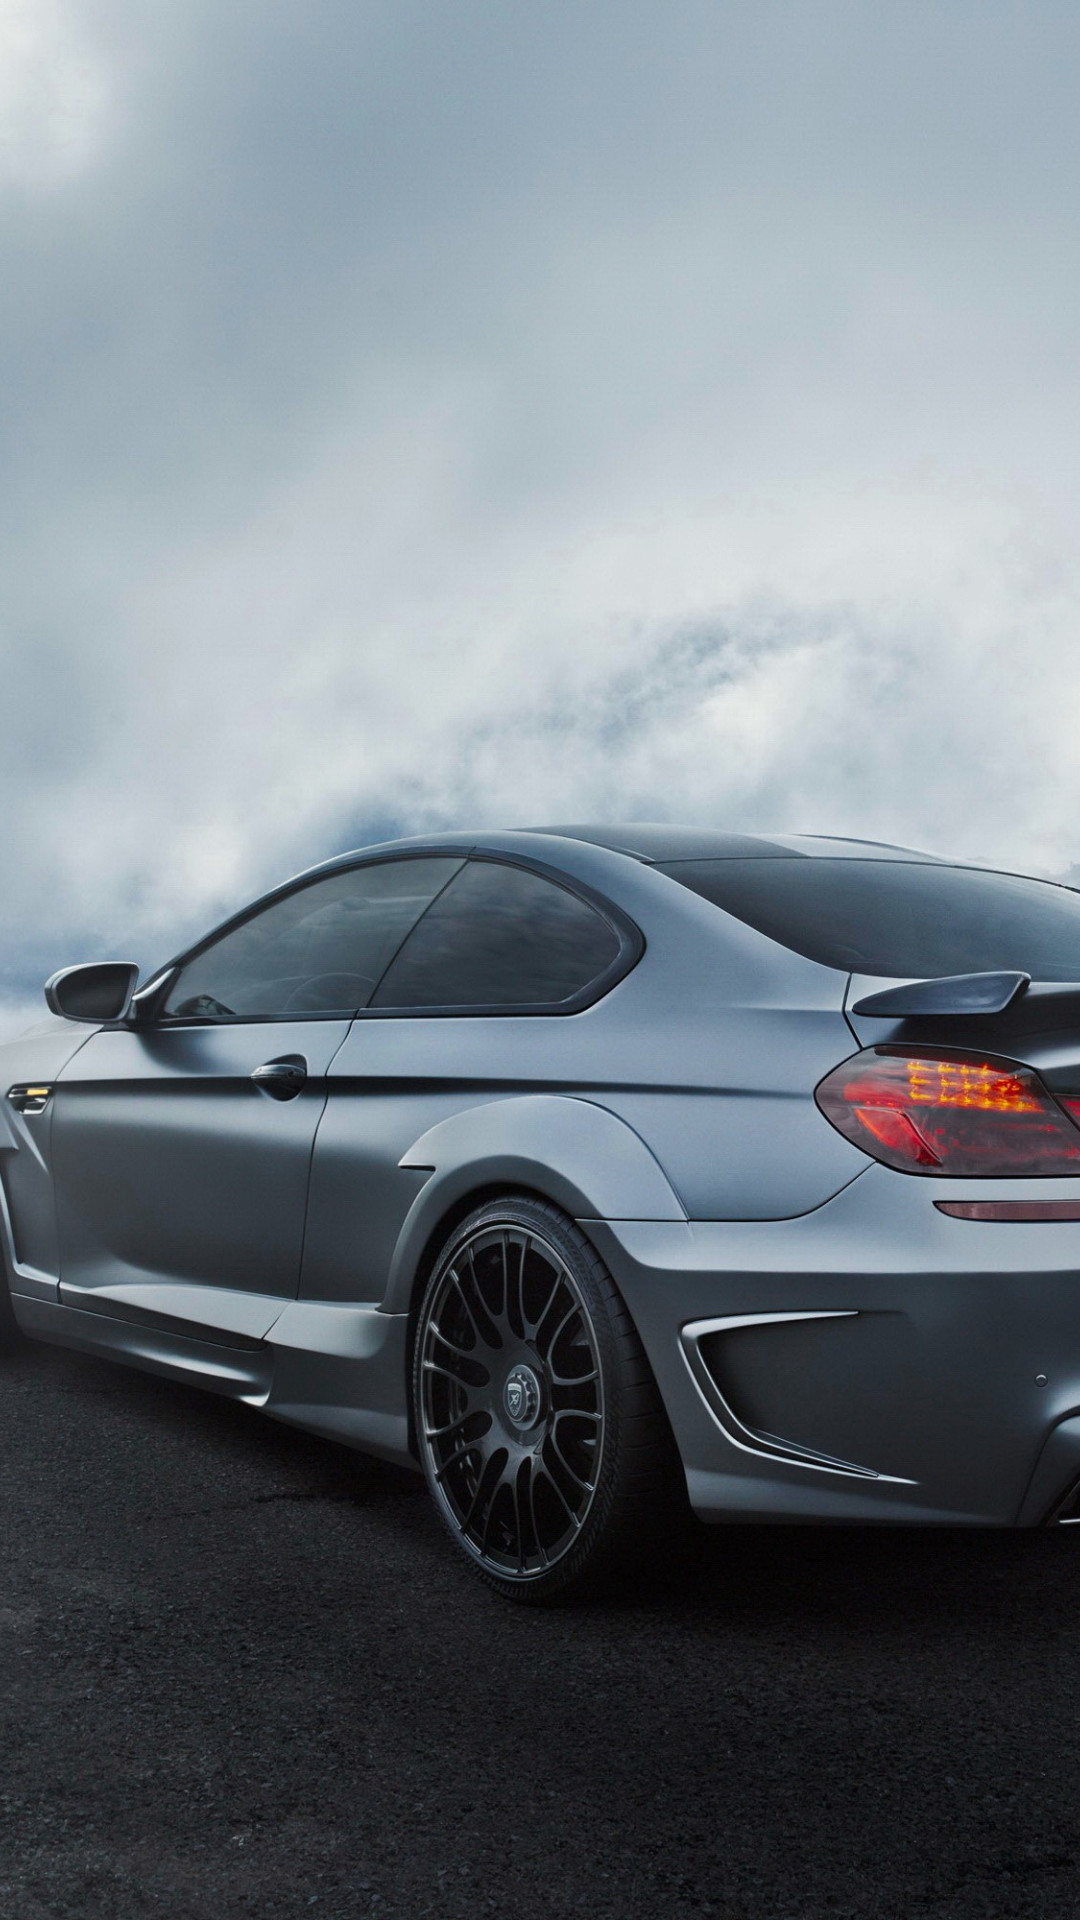 Bmw Iphone Wallpapers Free Download Bmw M6 Wallpaper Handy 1080x1920 Download Hd Wallpaper Wallpapertip